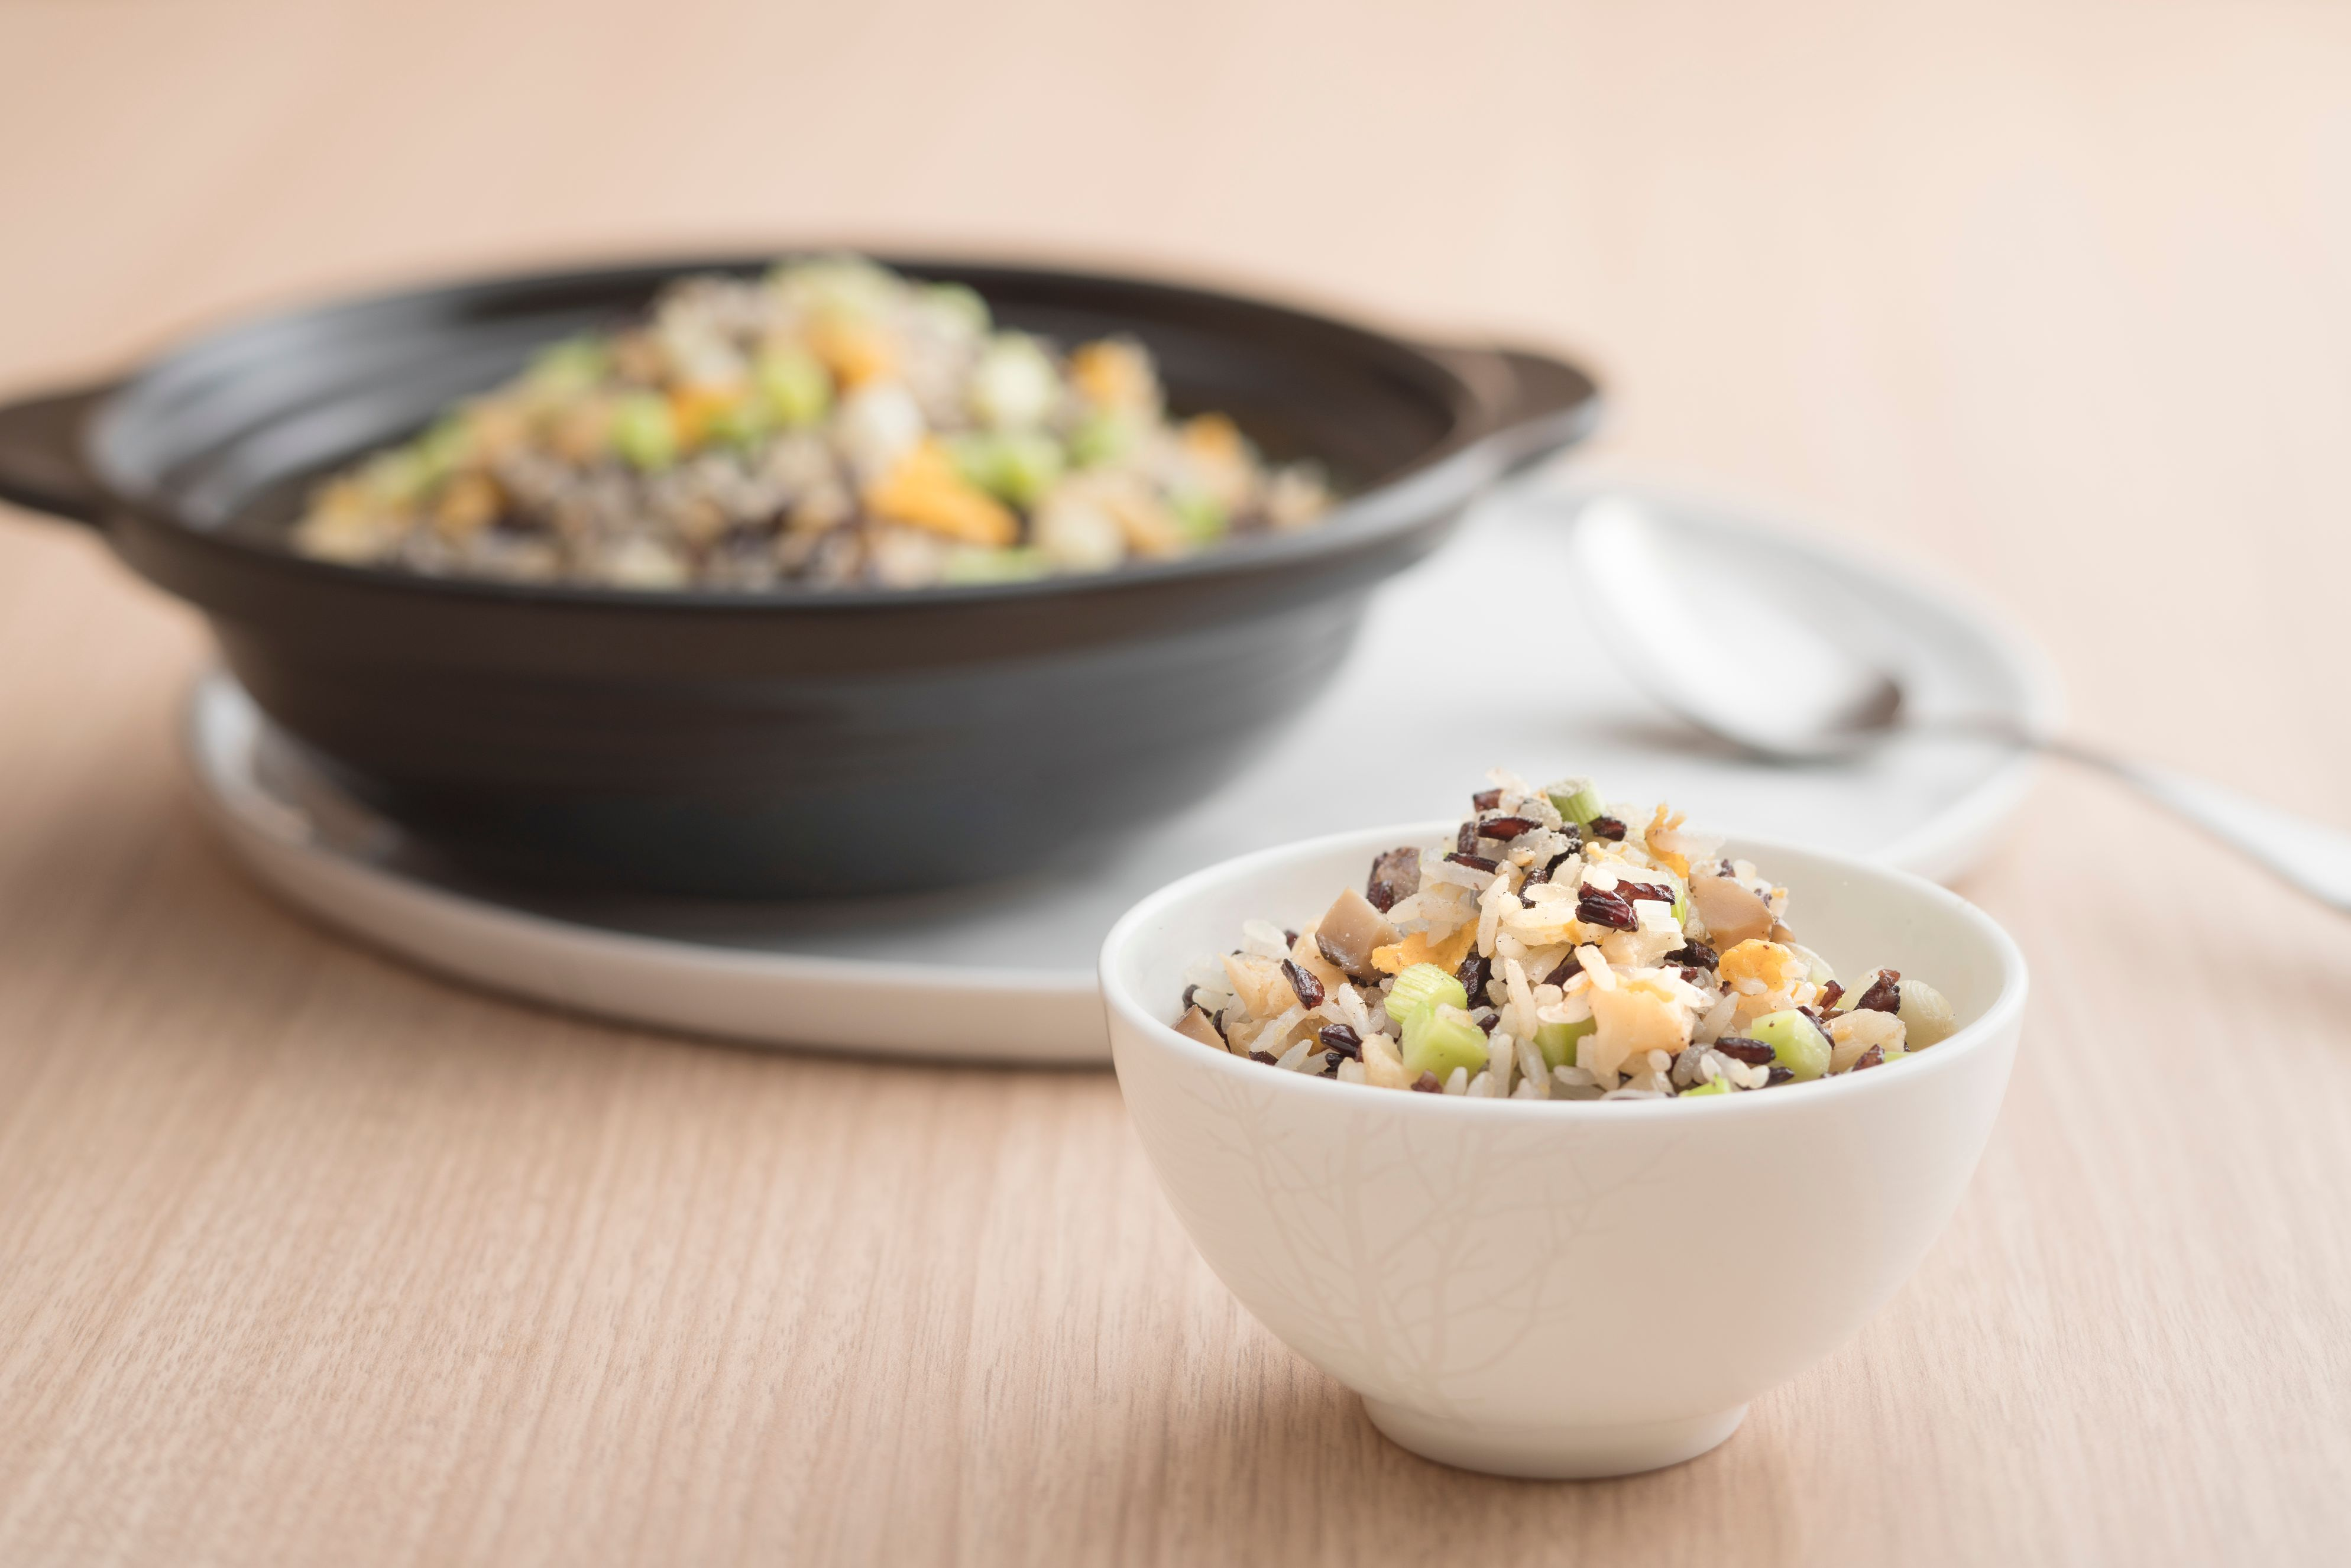 Fried brown rice with diced vegetables and pine nuts in claypot